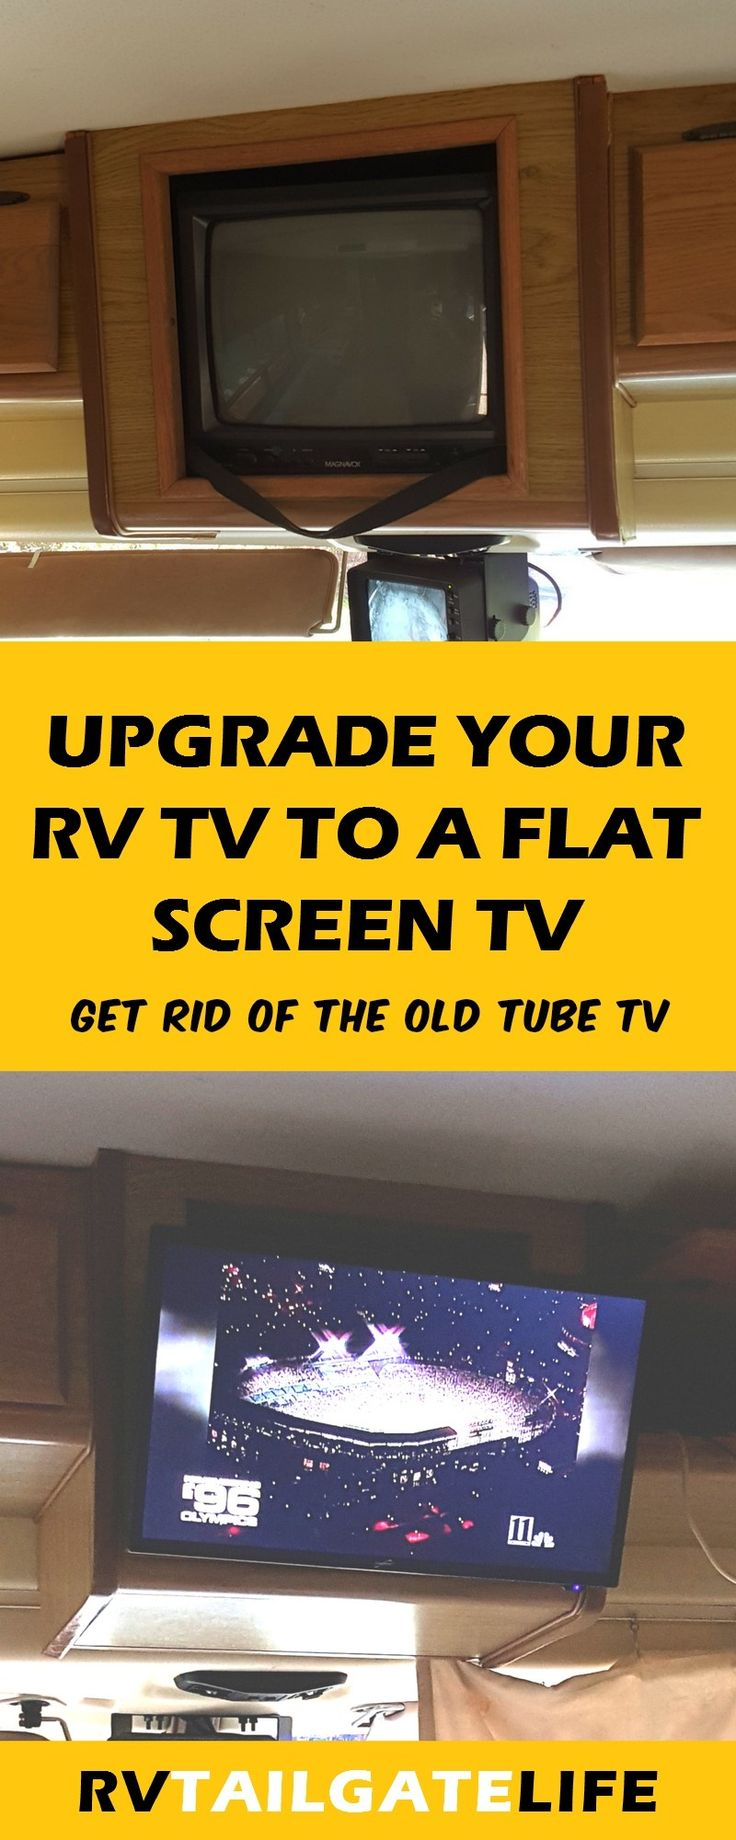 Upgrade your RV TV with a new digital flatscreen TV! #RVmods